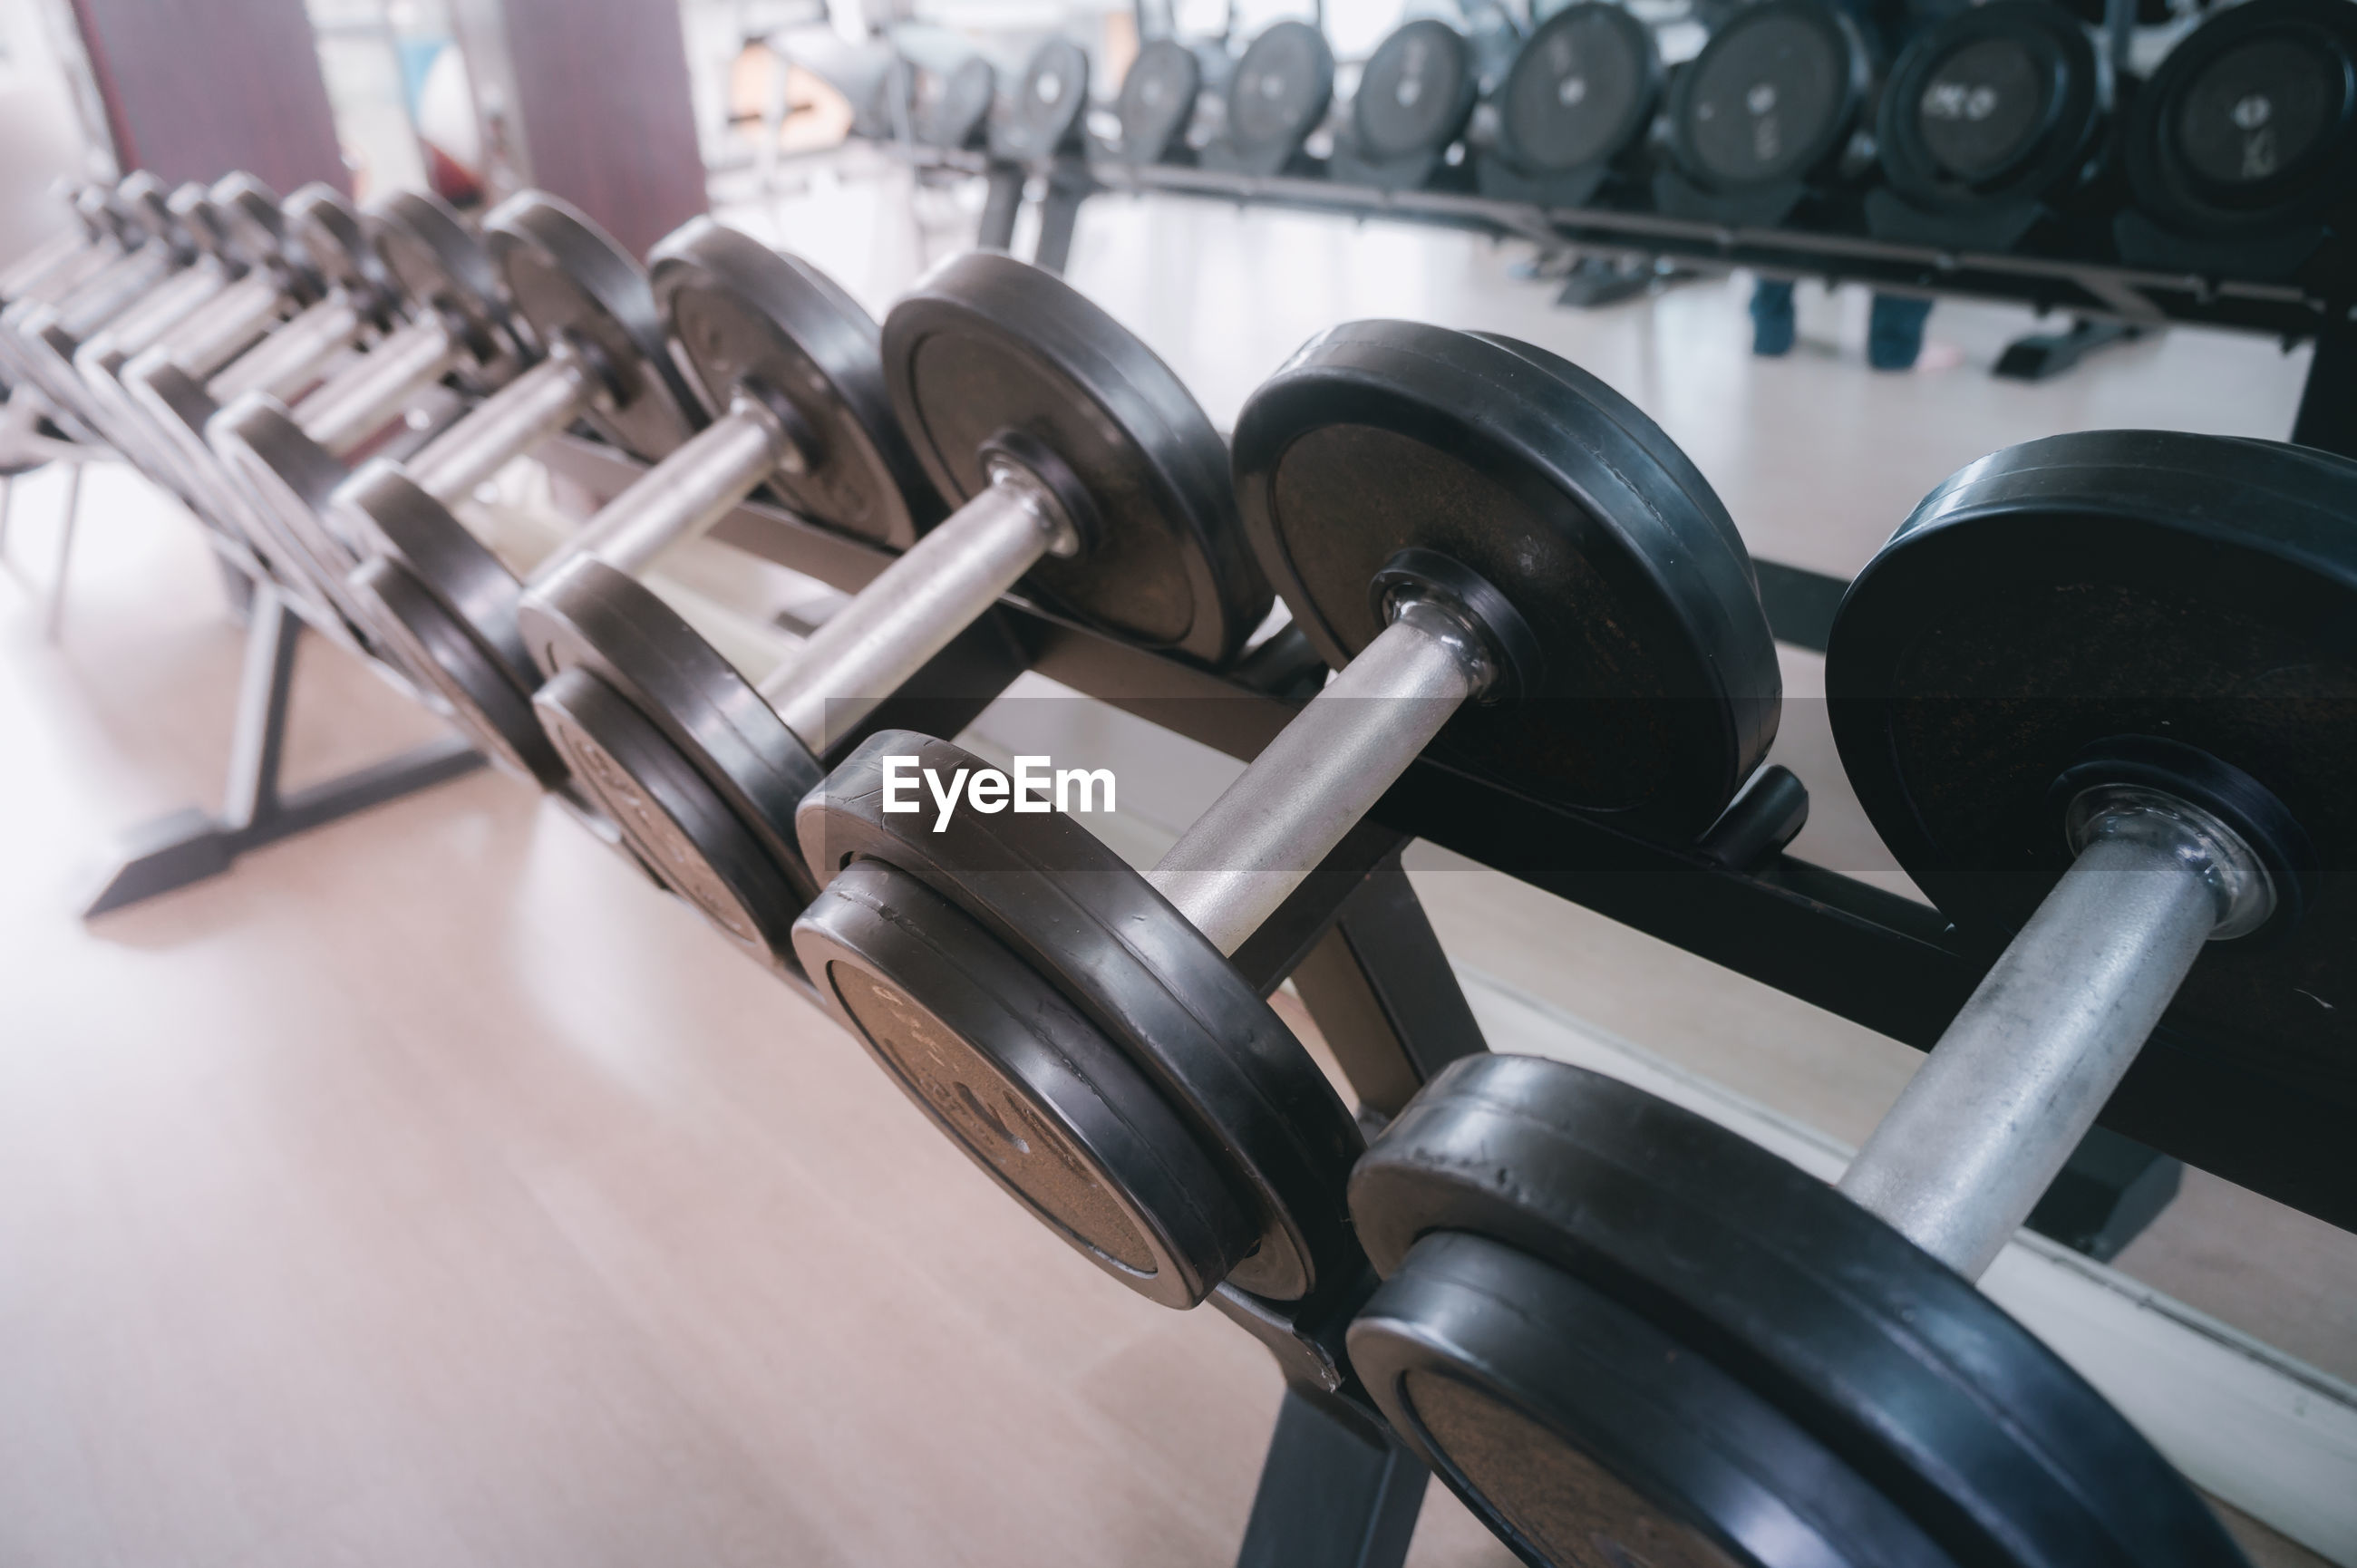 Dumbbells in row at gym